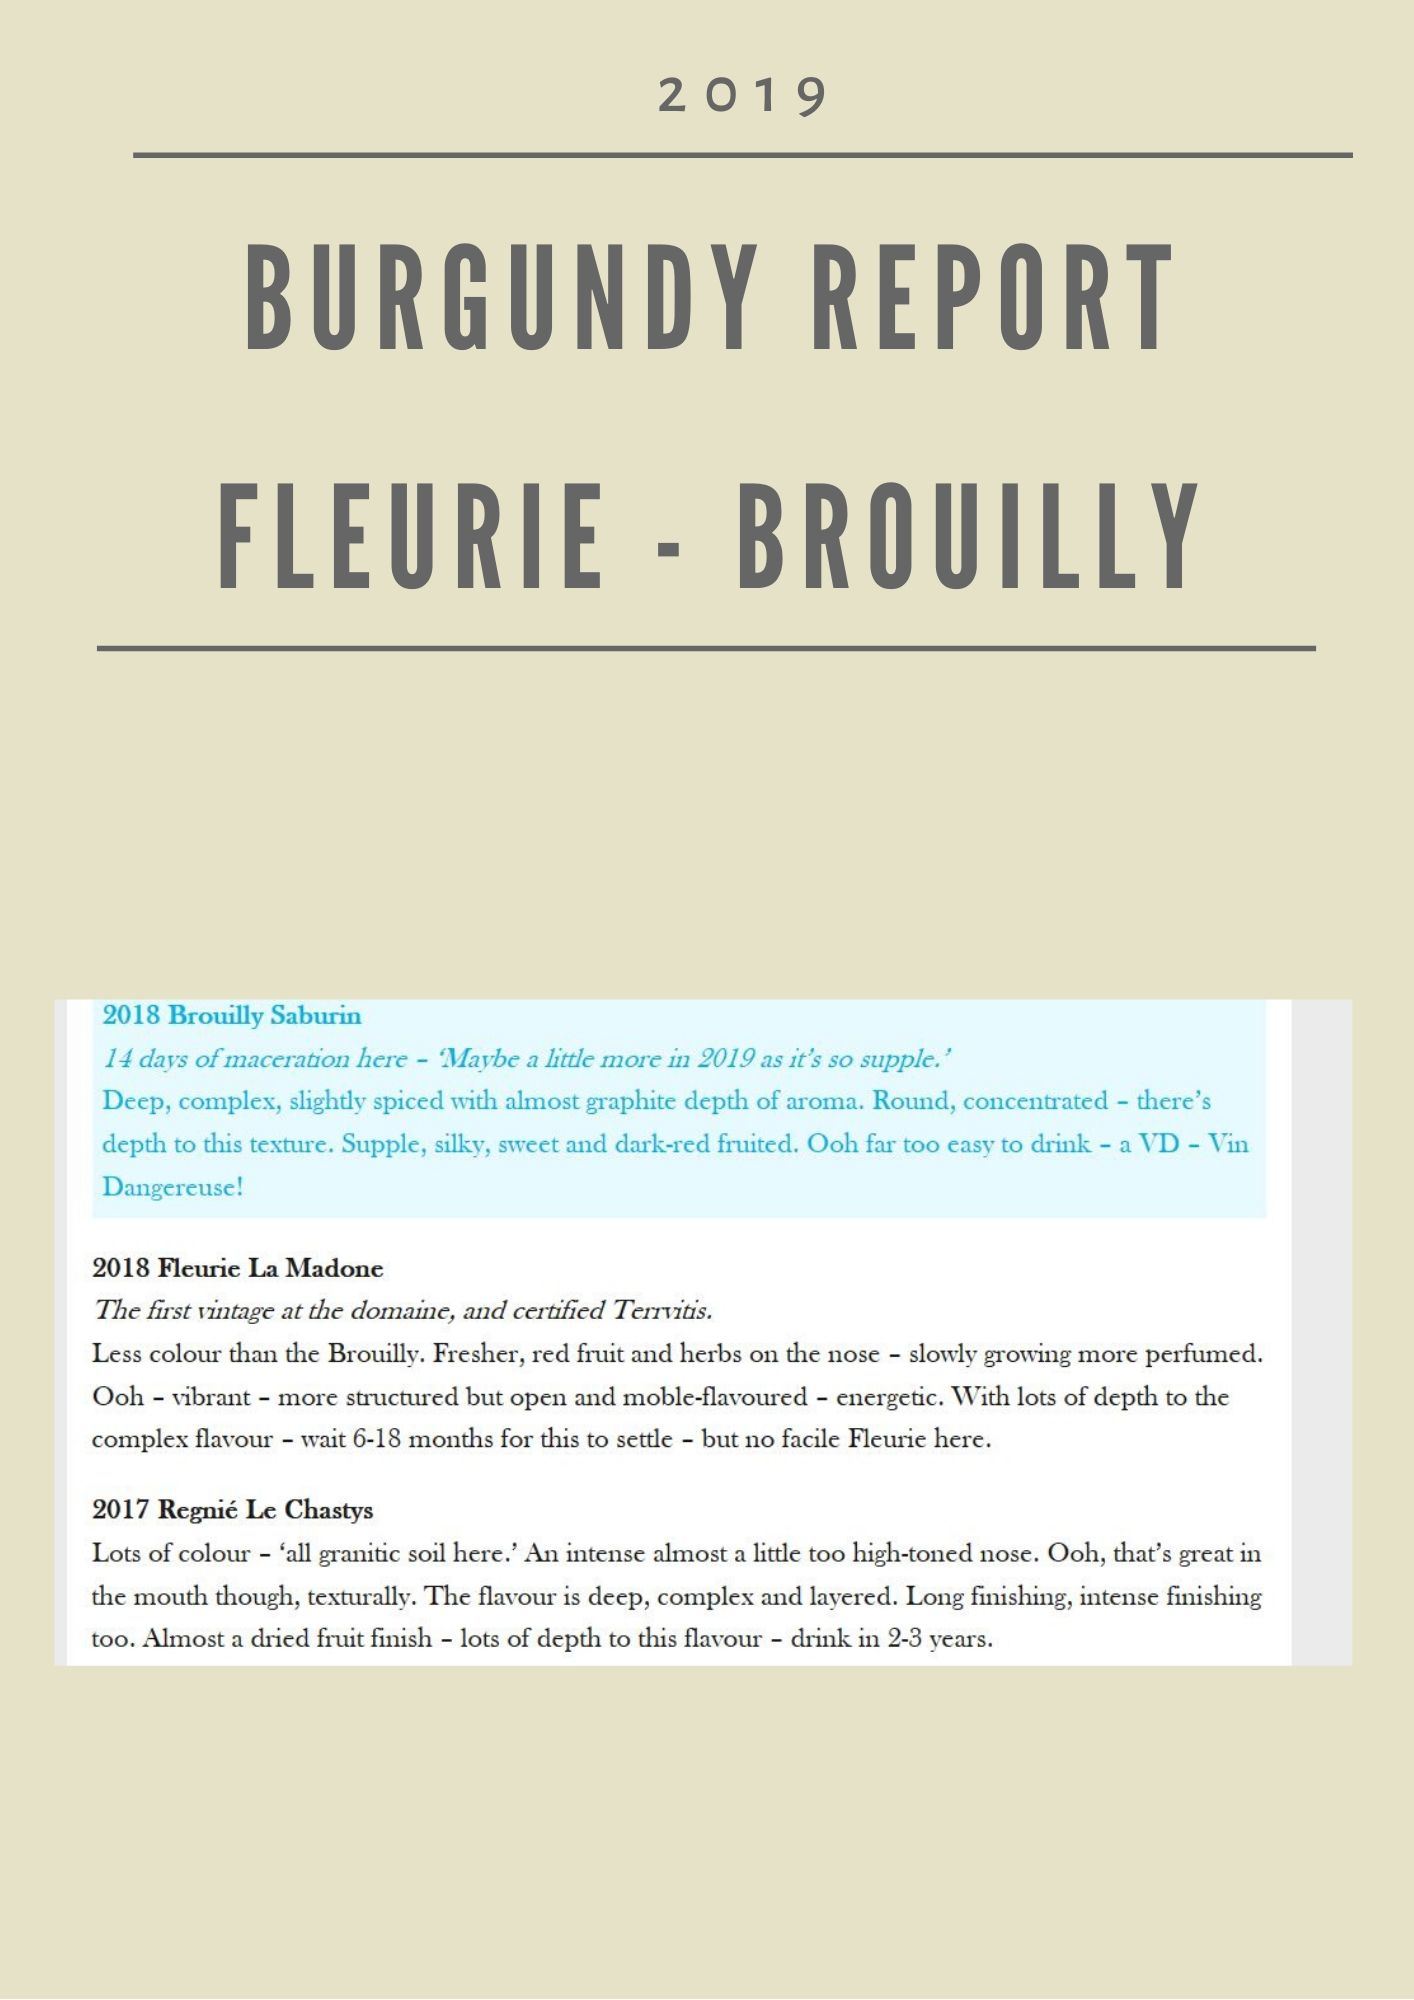 Burgundy Report - Fleurie, Brouilly & Regnié